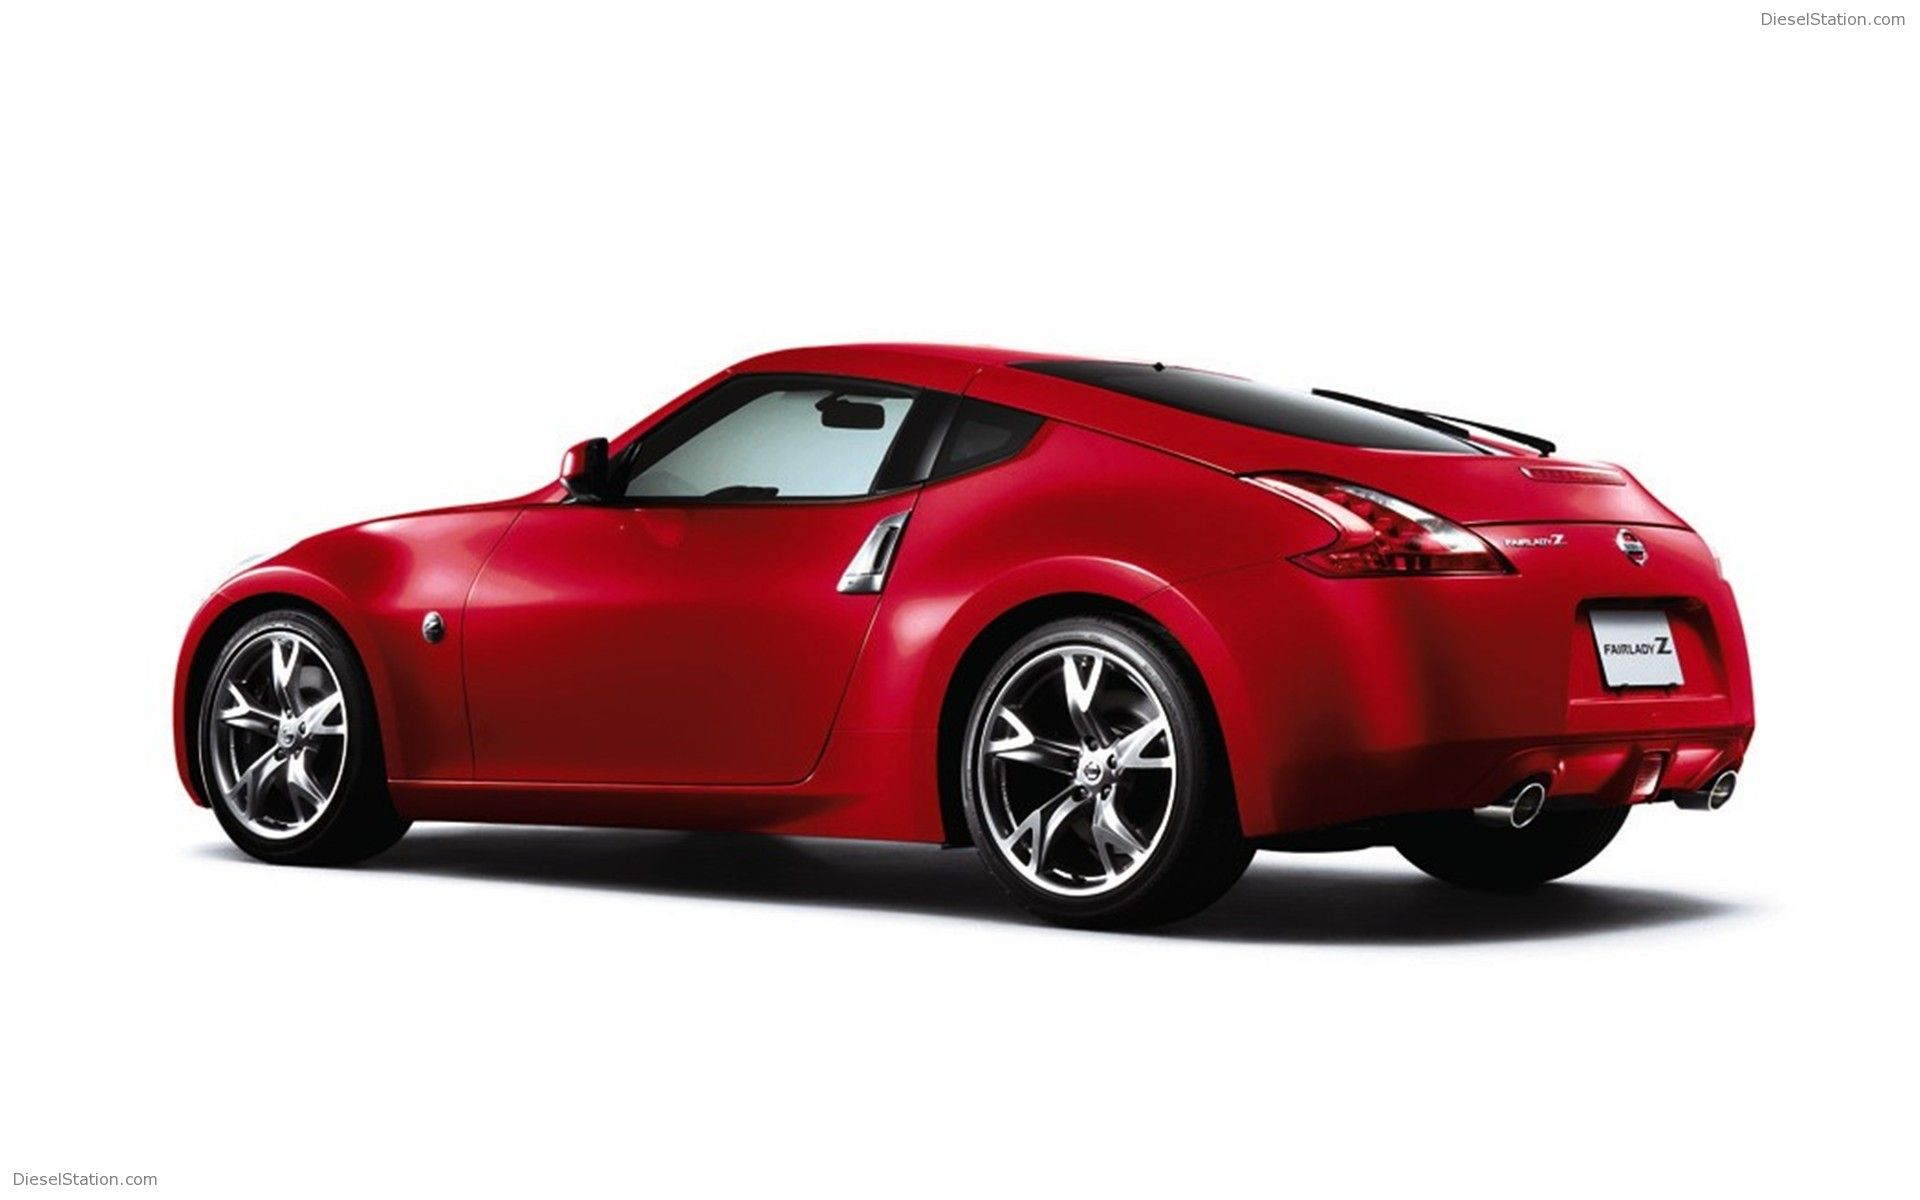 Red Nissan Fairlady Z. Find This Pin And More On 2 Seater Cars ...